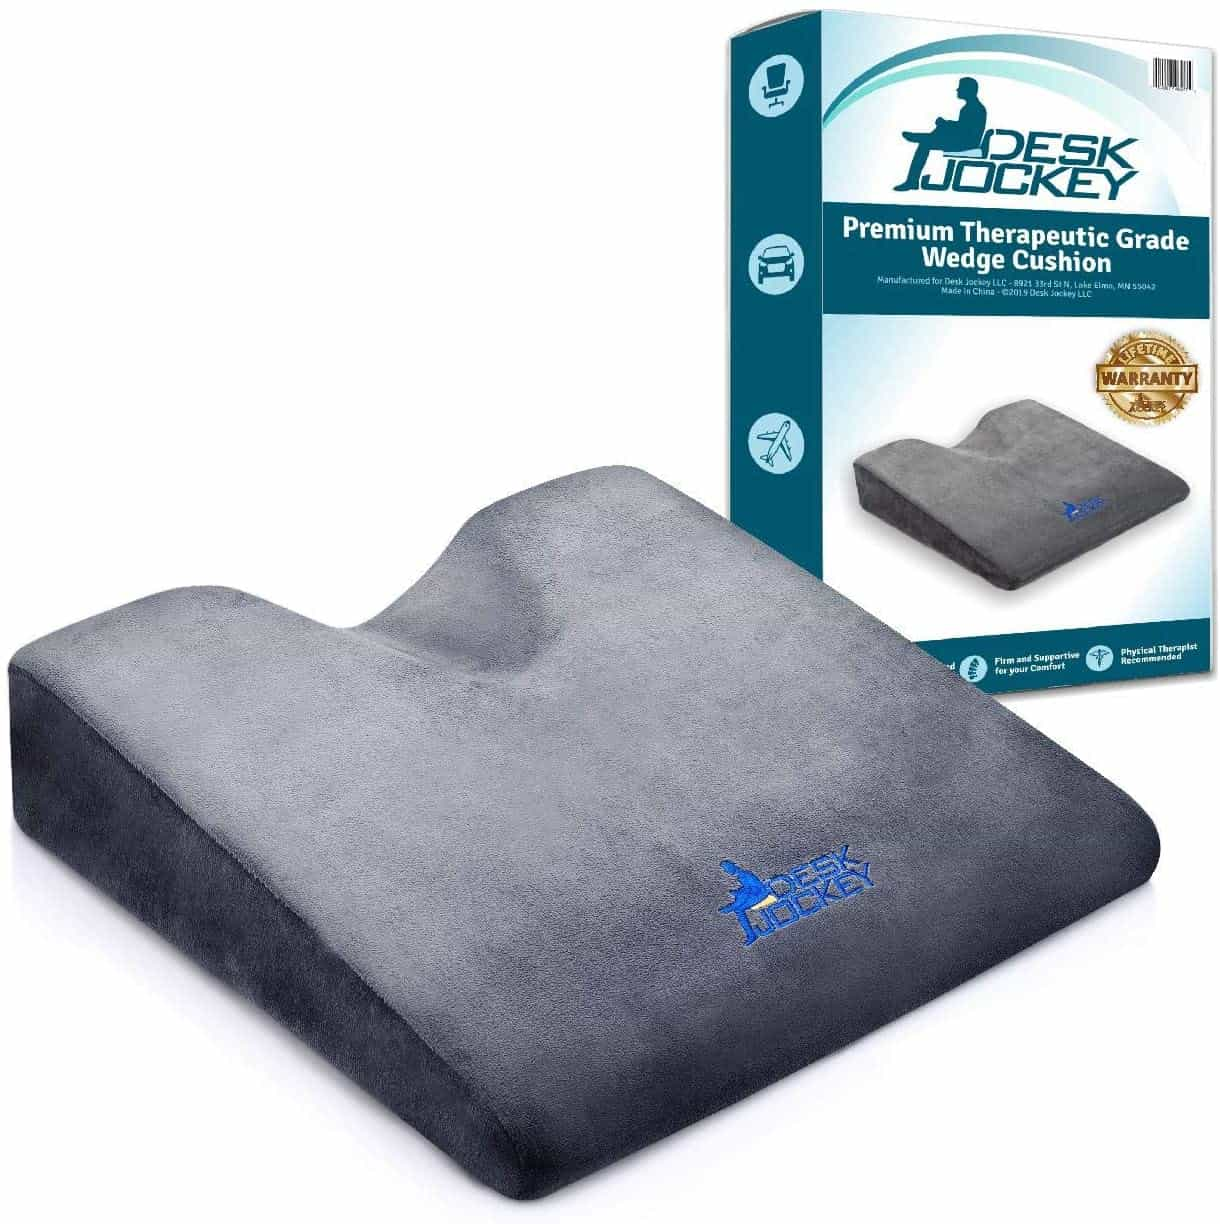 Desk Jockey Car Seat Cushion